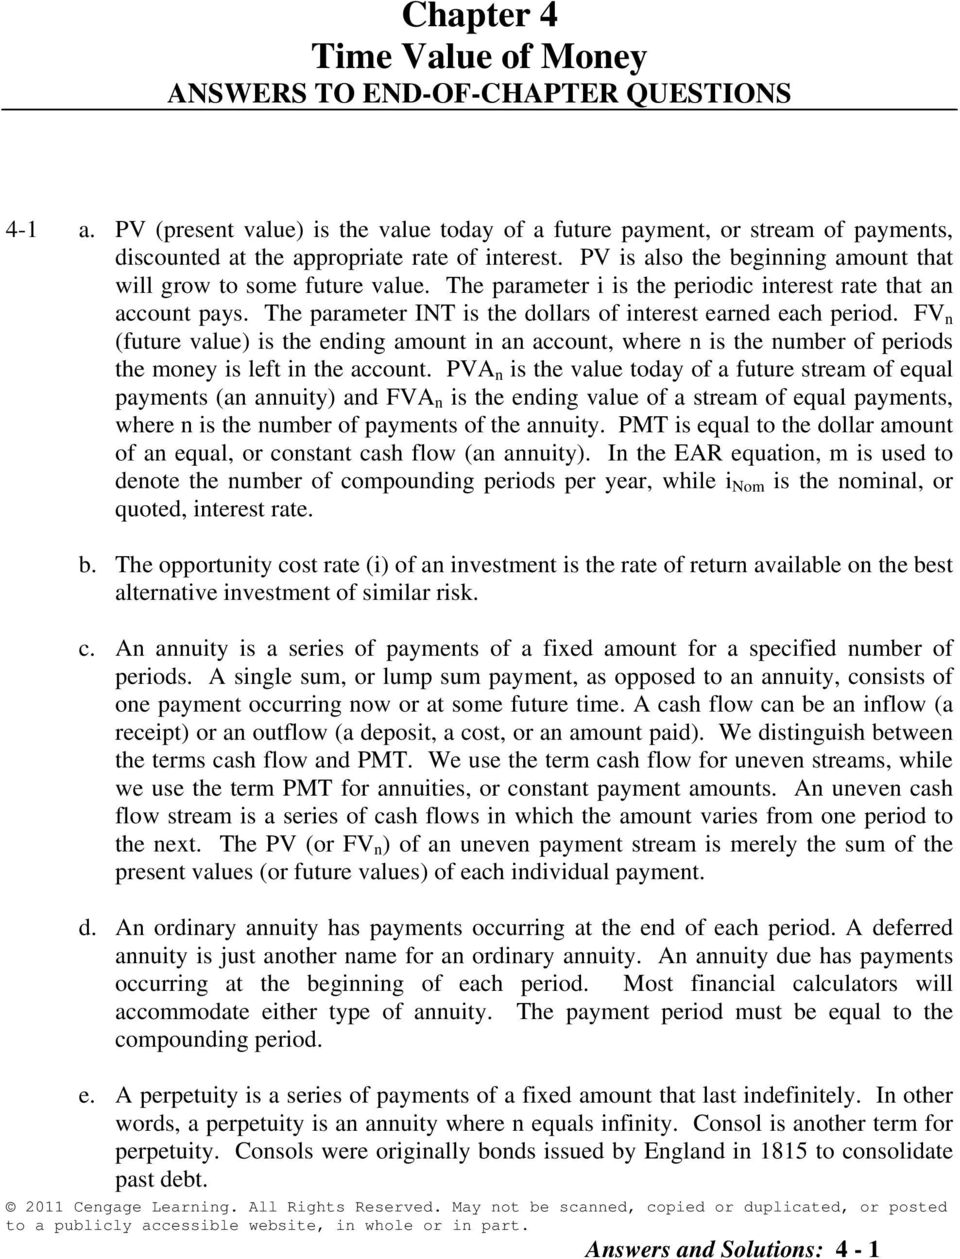 The parameter i is the periodic interest rate that an account pays. The  parameter INT